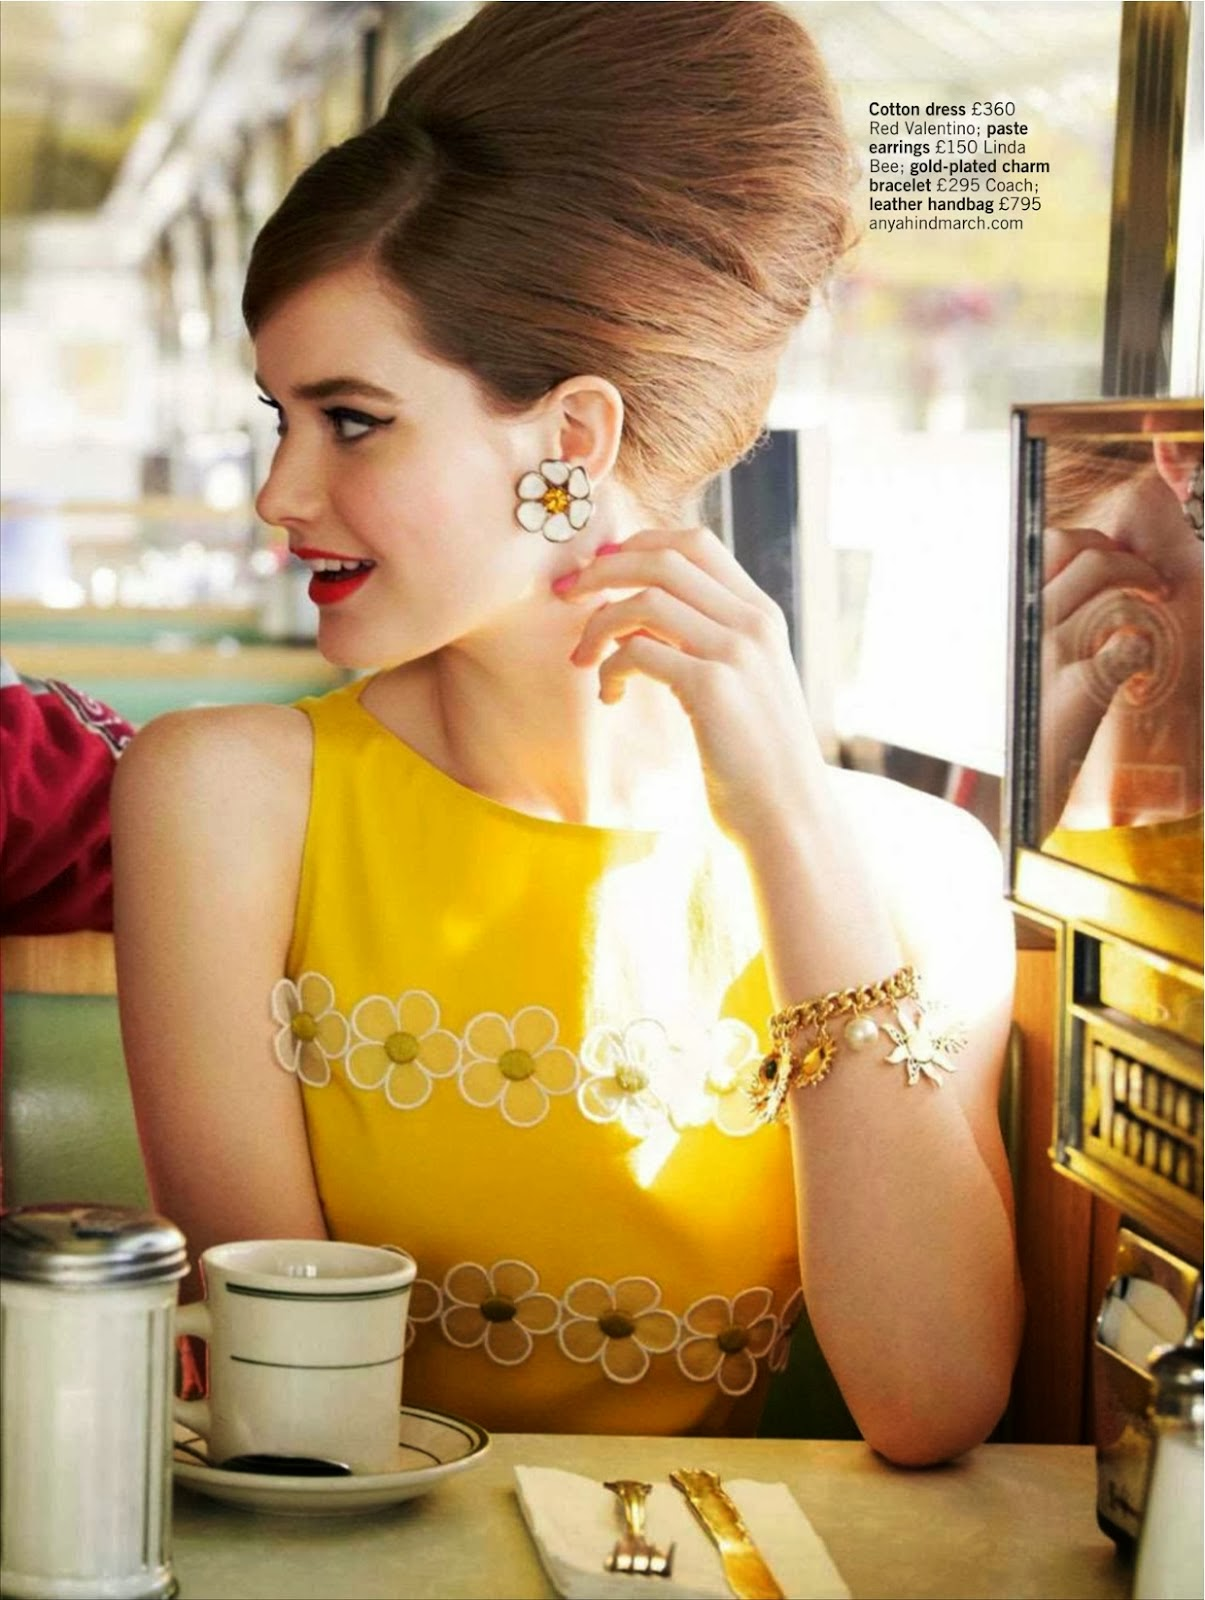 Chic 50s style fashion editorial with Teddy Boys in Glamour UK magazine